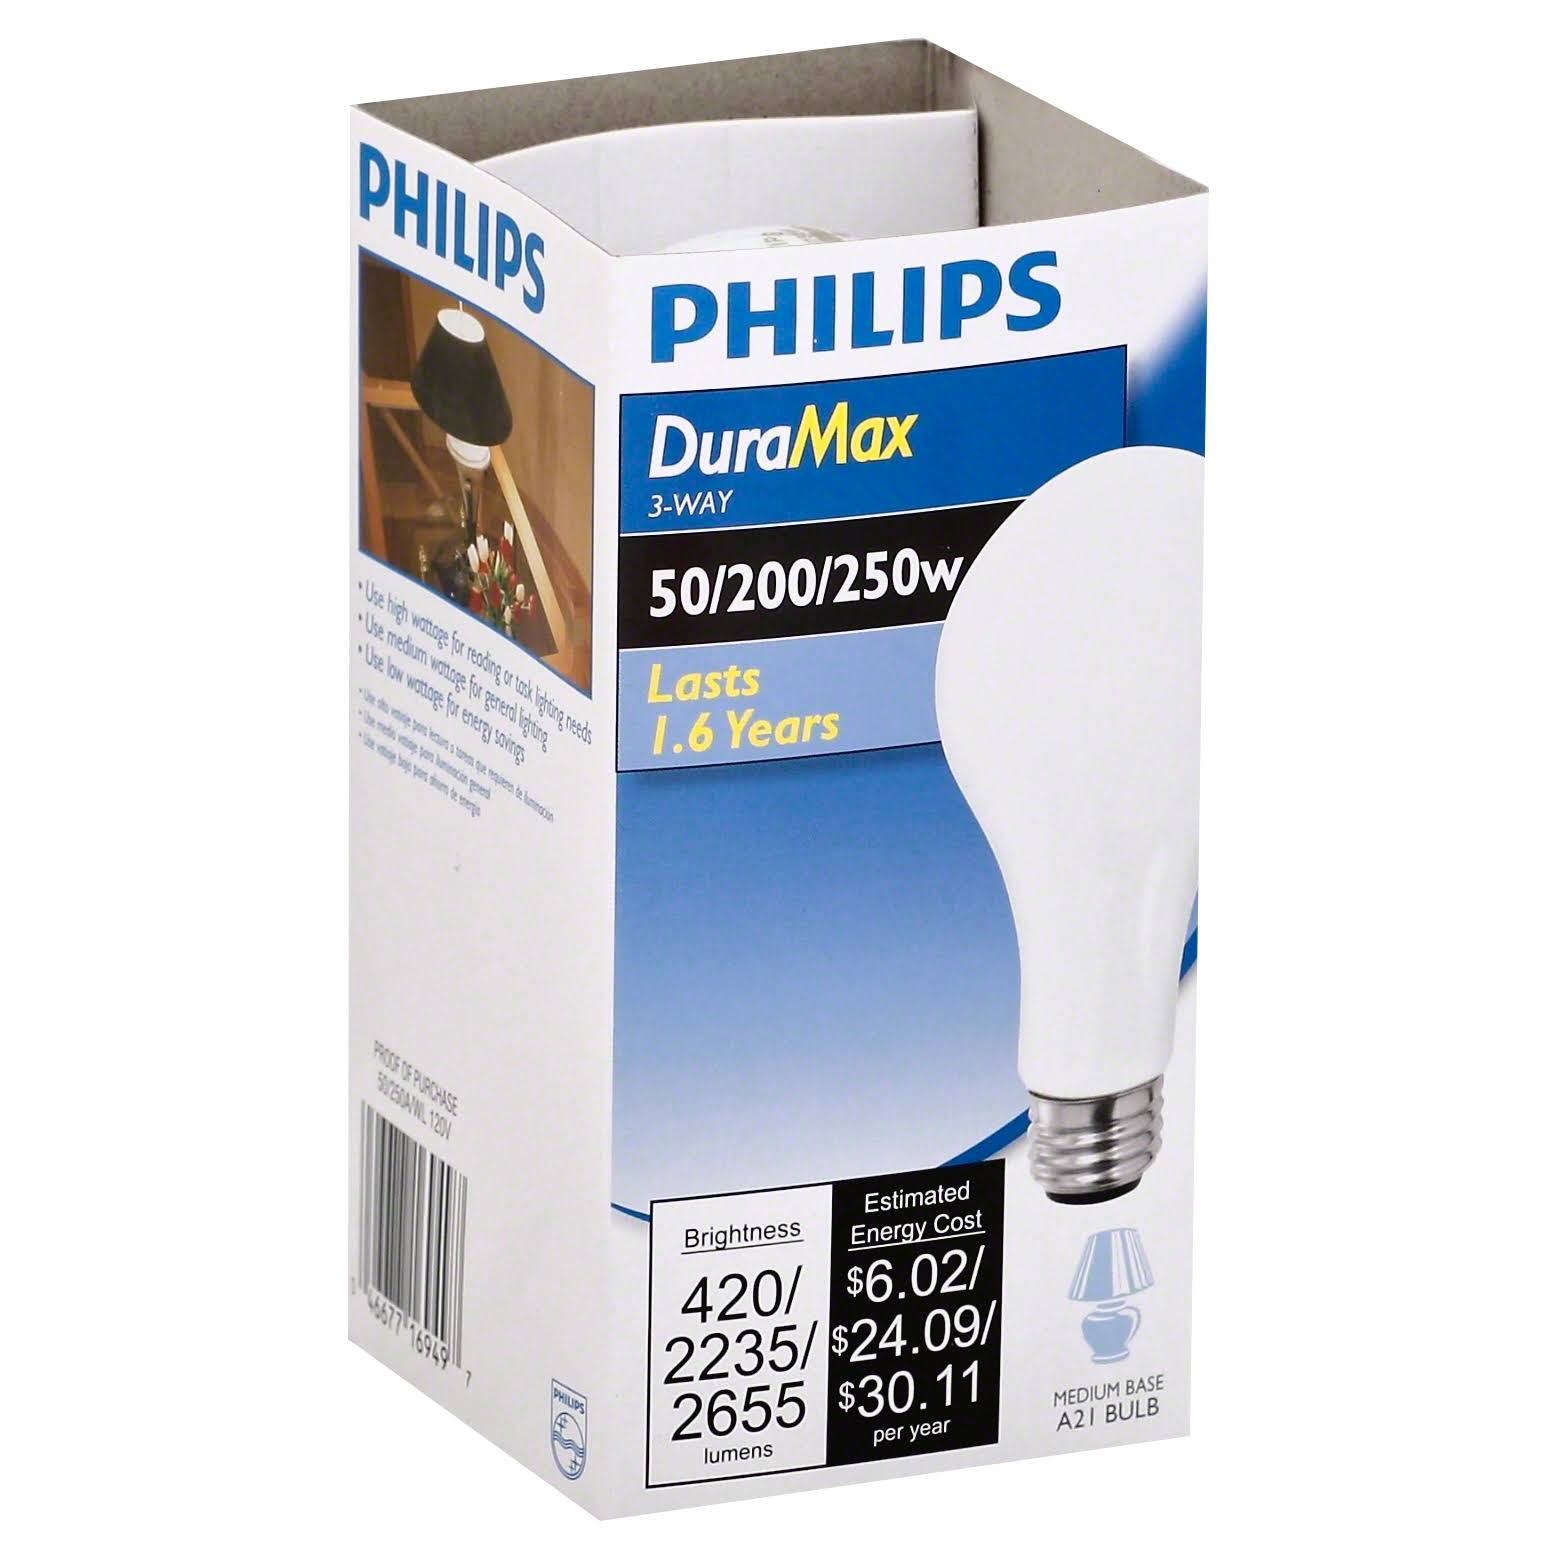 Philips DuraMax Long Life Light Bulb, 3-Way, 50/200/250 W